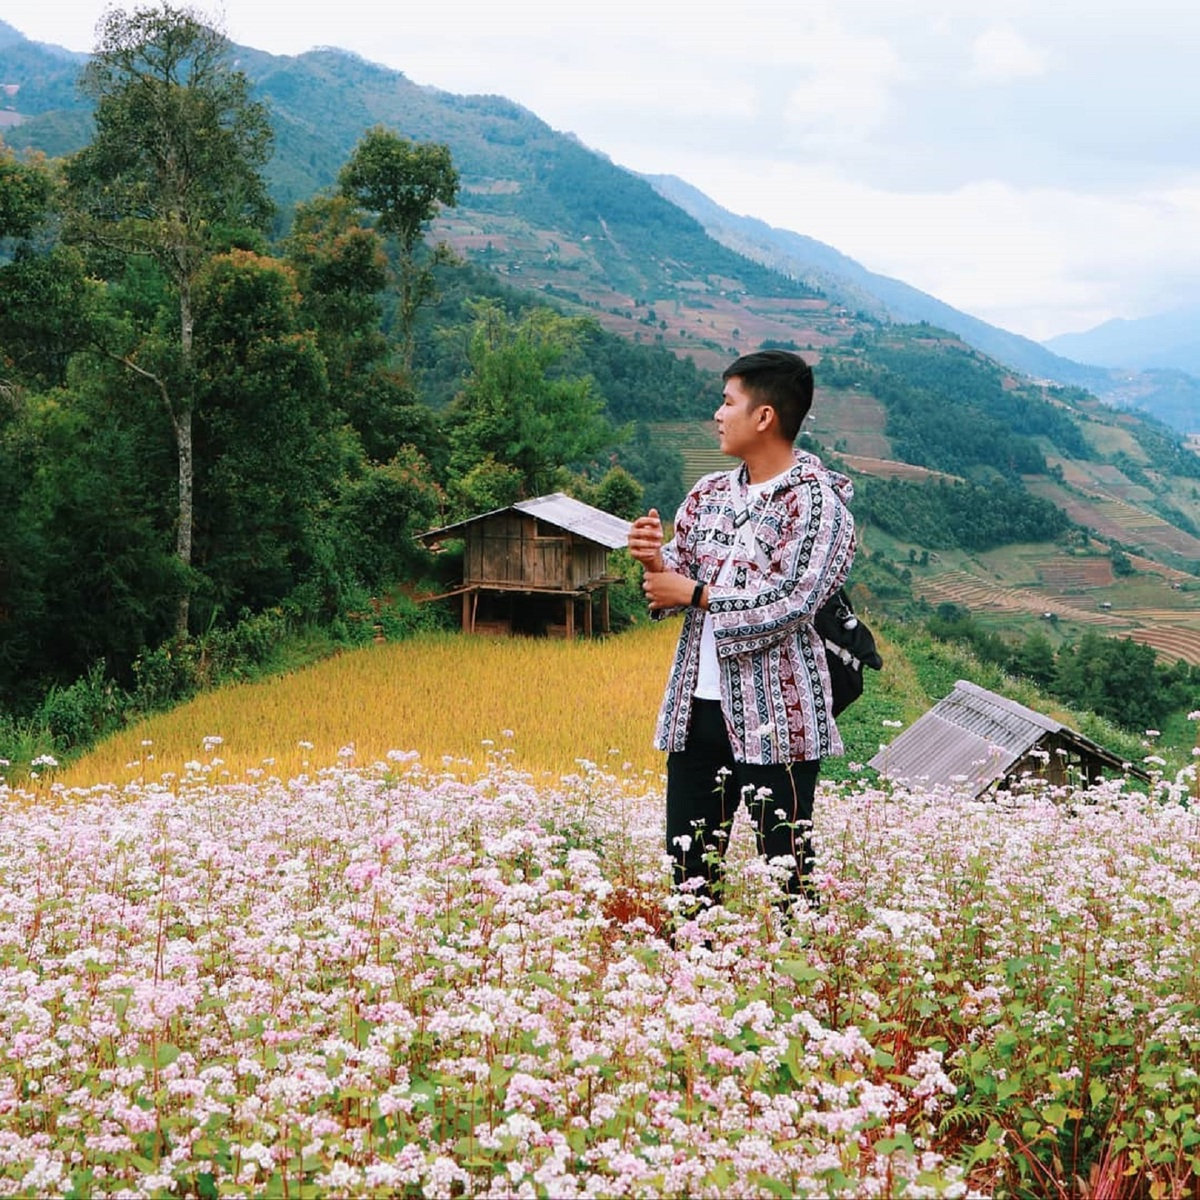 Flower season across Vietnam under the lens of local photographer